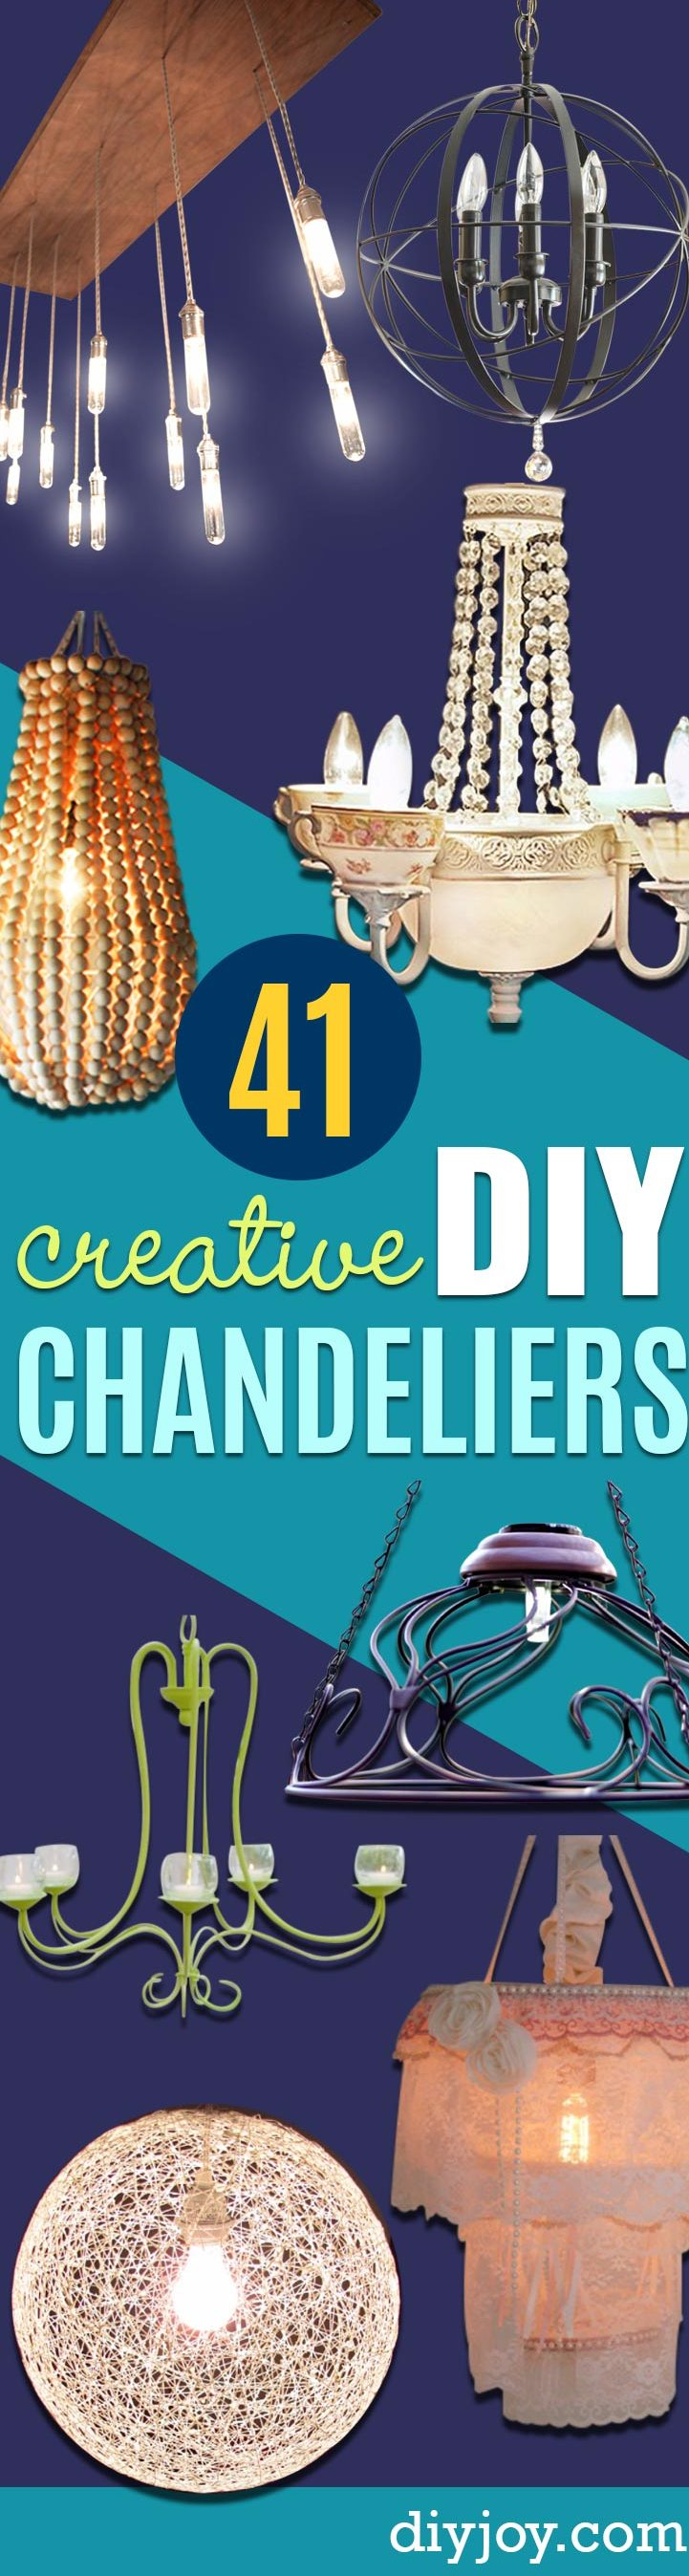 DIY Chandelier Ideas and Project Tutorials - Easy Makeover Tips, Rustic Pipe, Crystal, Rustic, Mason Jar, Beads. Bedroom, Outdoor and Wedding Girls Room Lighting Ideas With Step by Step Instructions